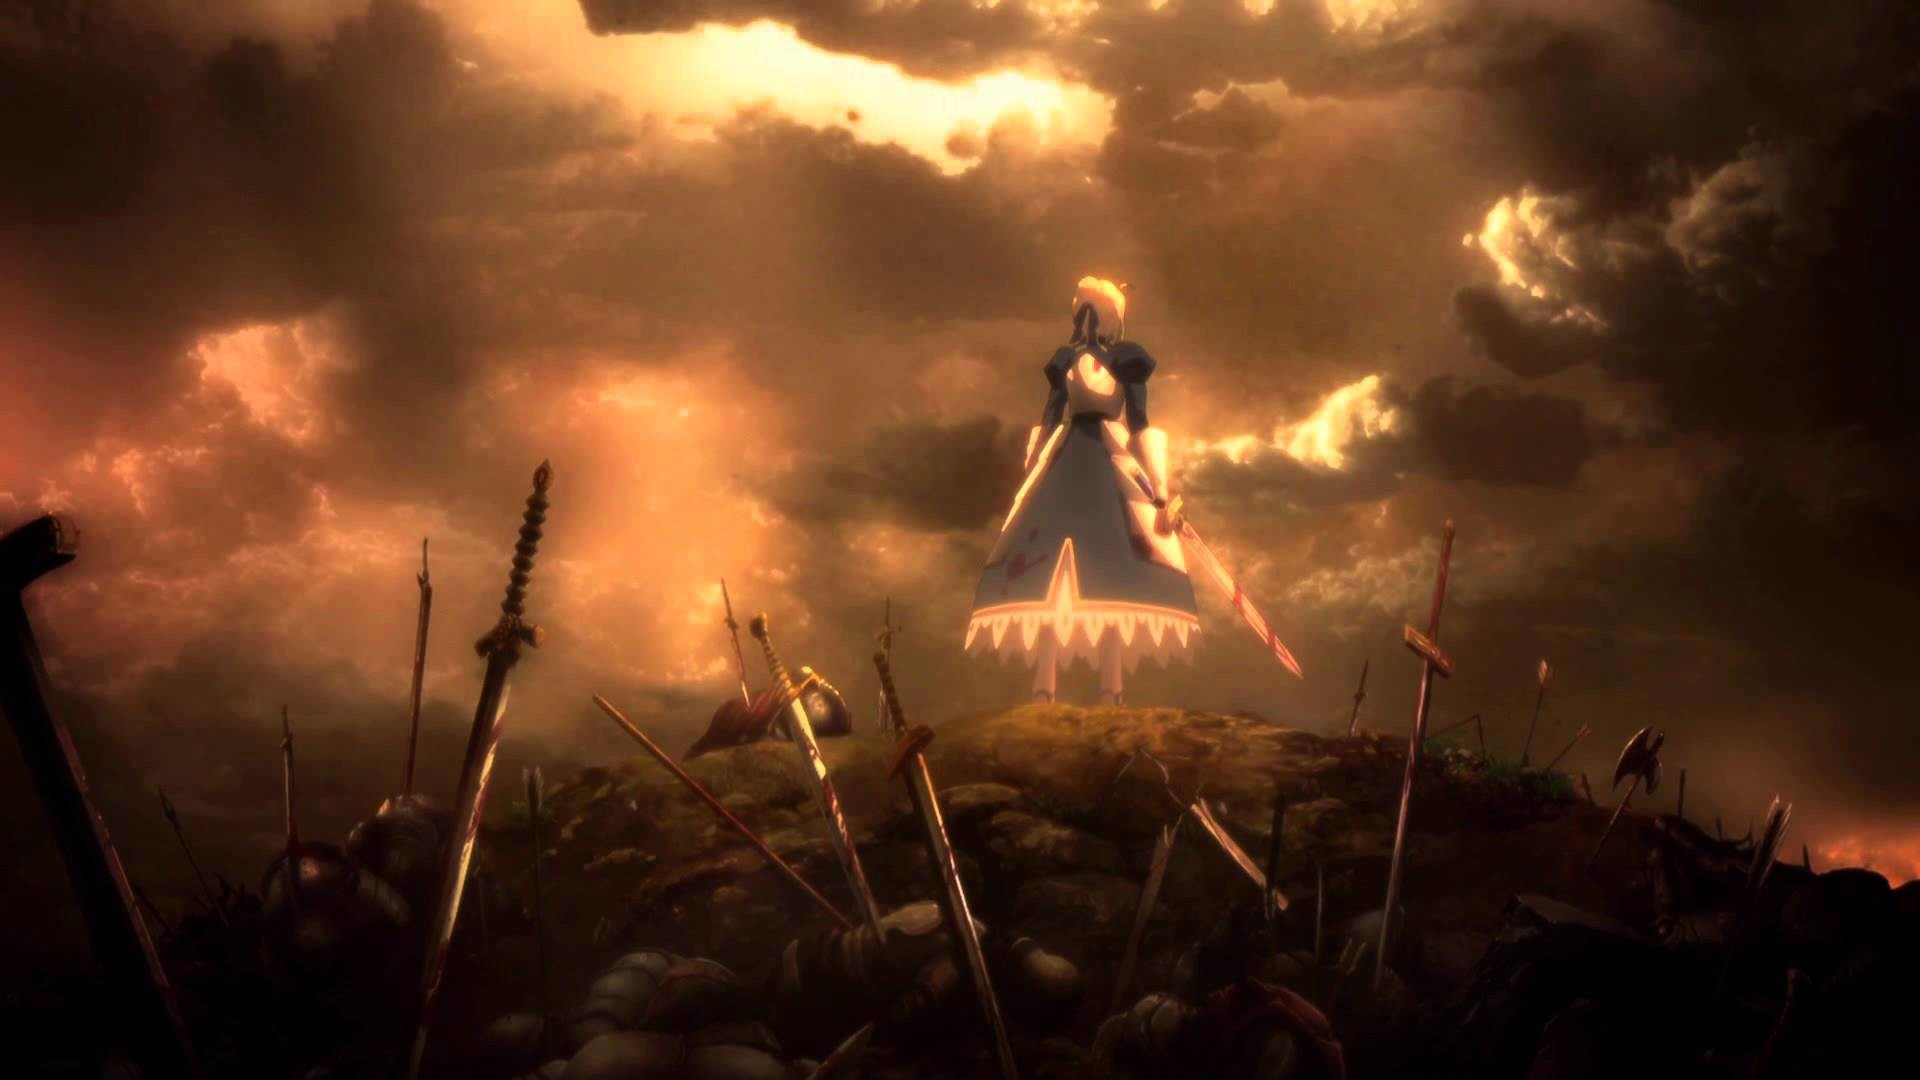 Fate/stay night: [Unlimited Blade Works] OST II – #22 Deep Slumber UBW  Extended – YouTube